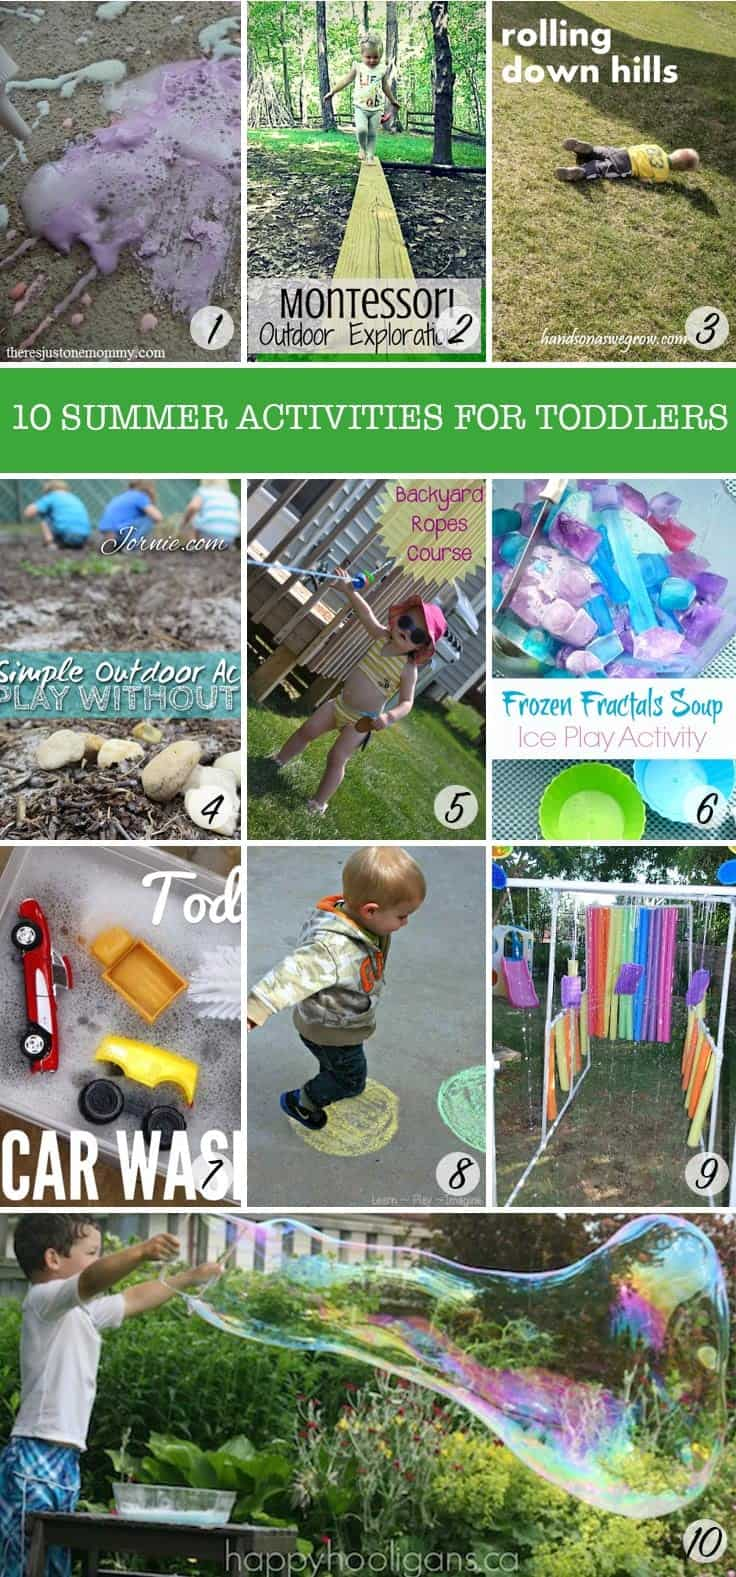 Wow - so many great ideas to get my toddlers outdoors this summer!